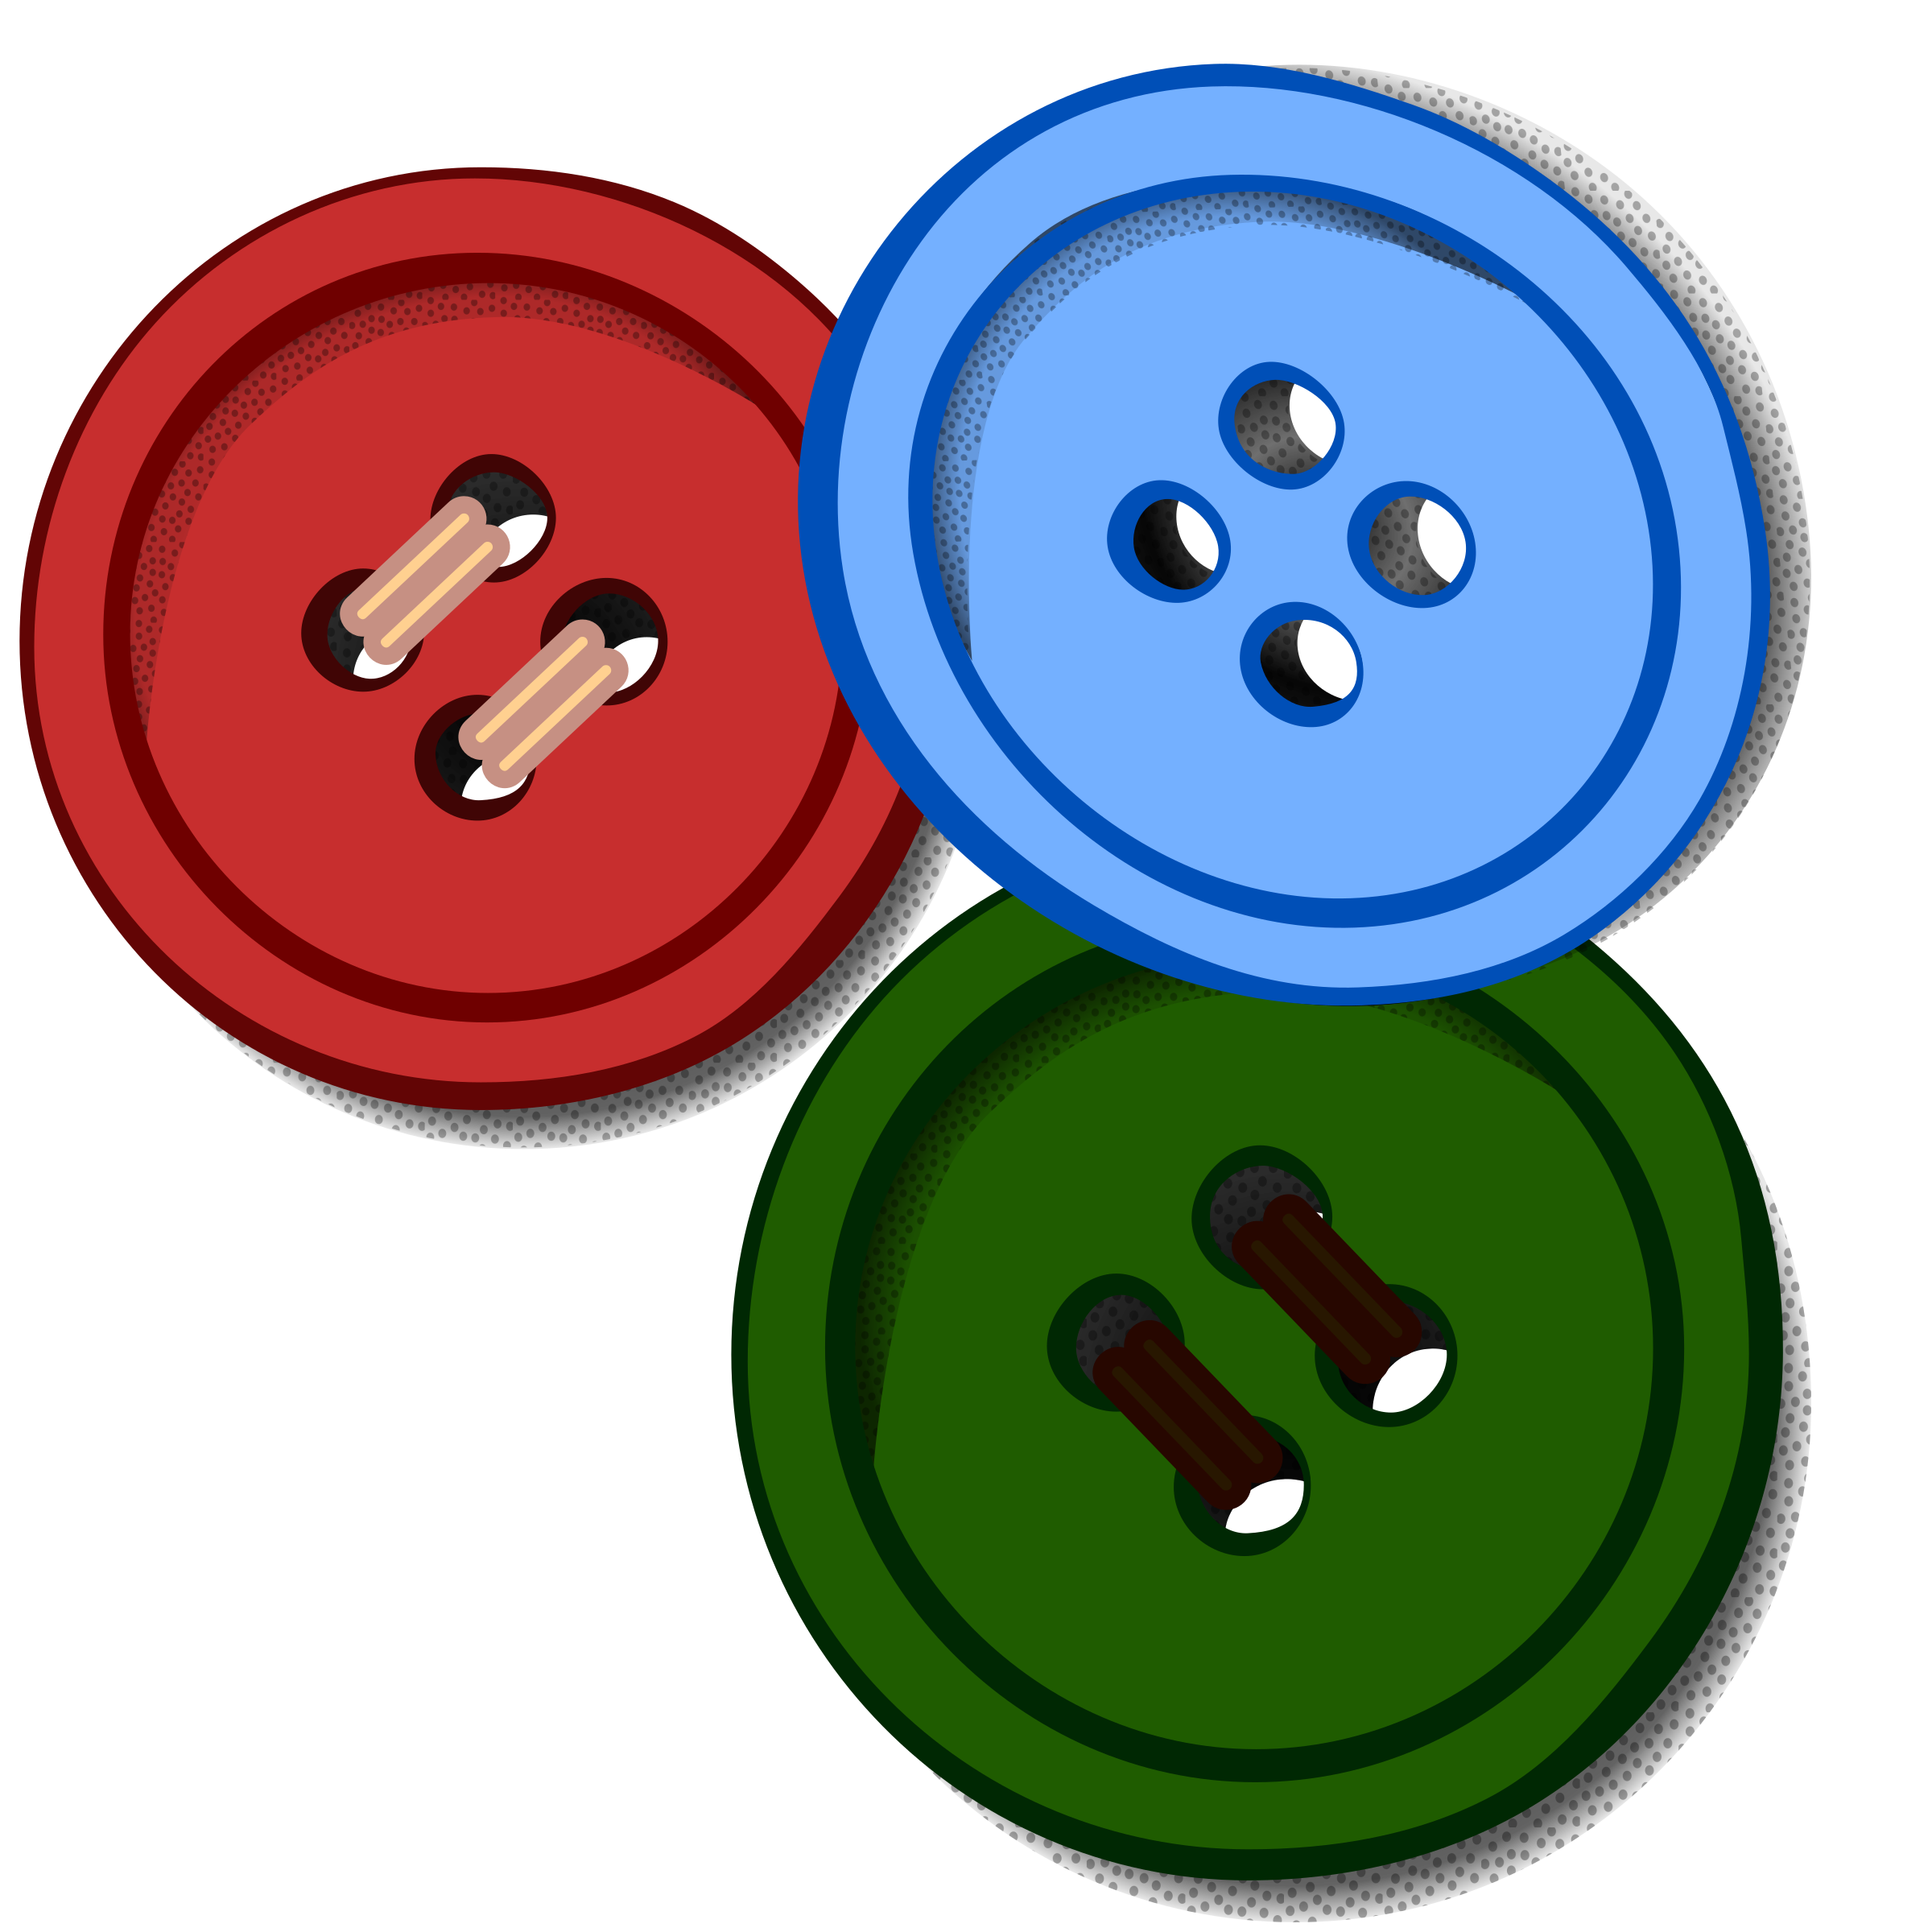 Buttons clipart. Coloured big image png